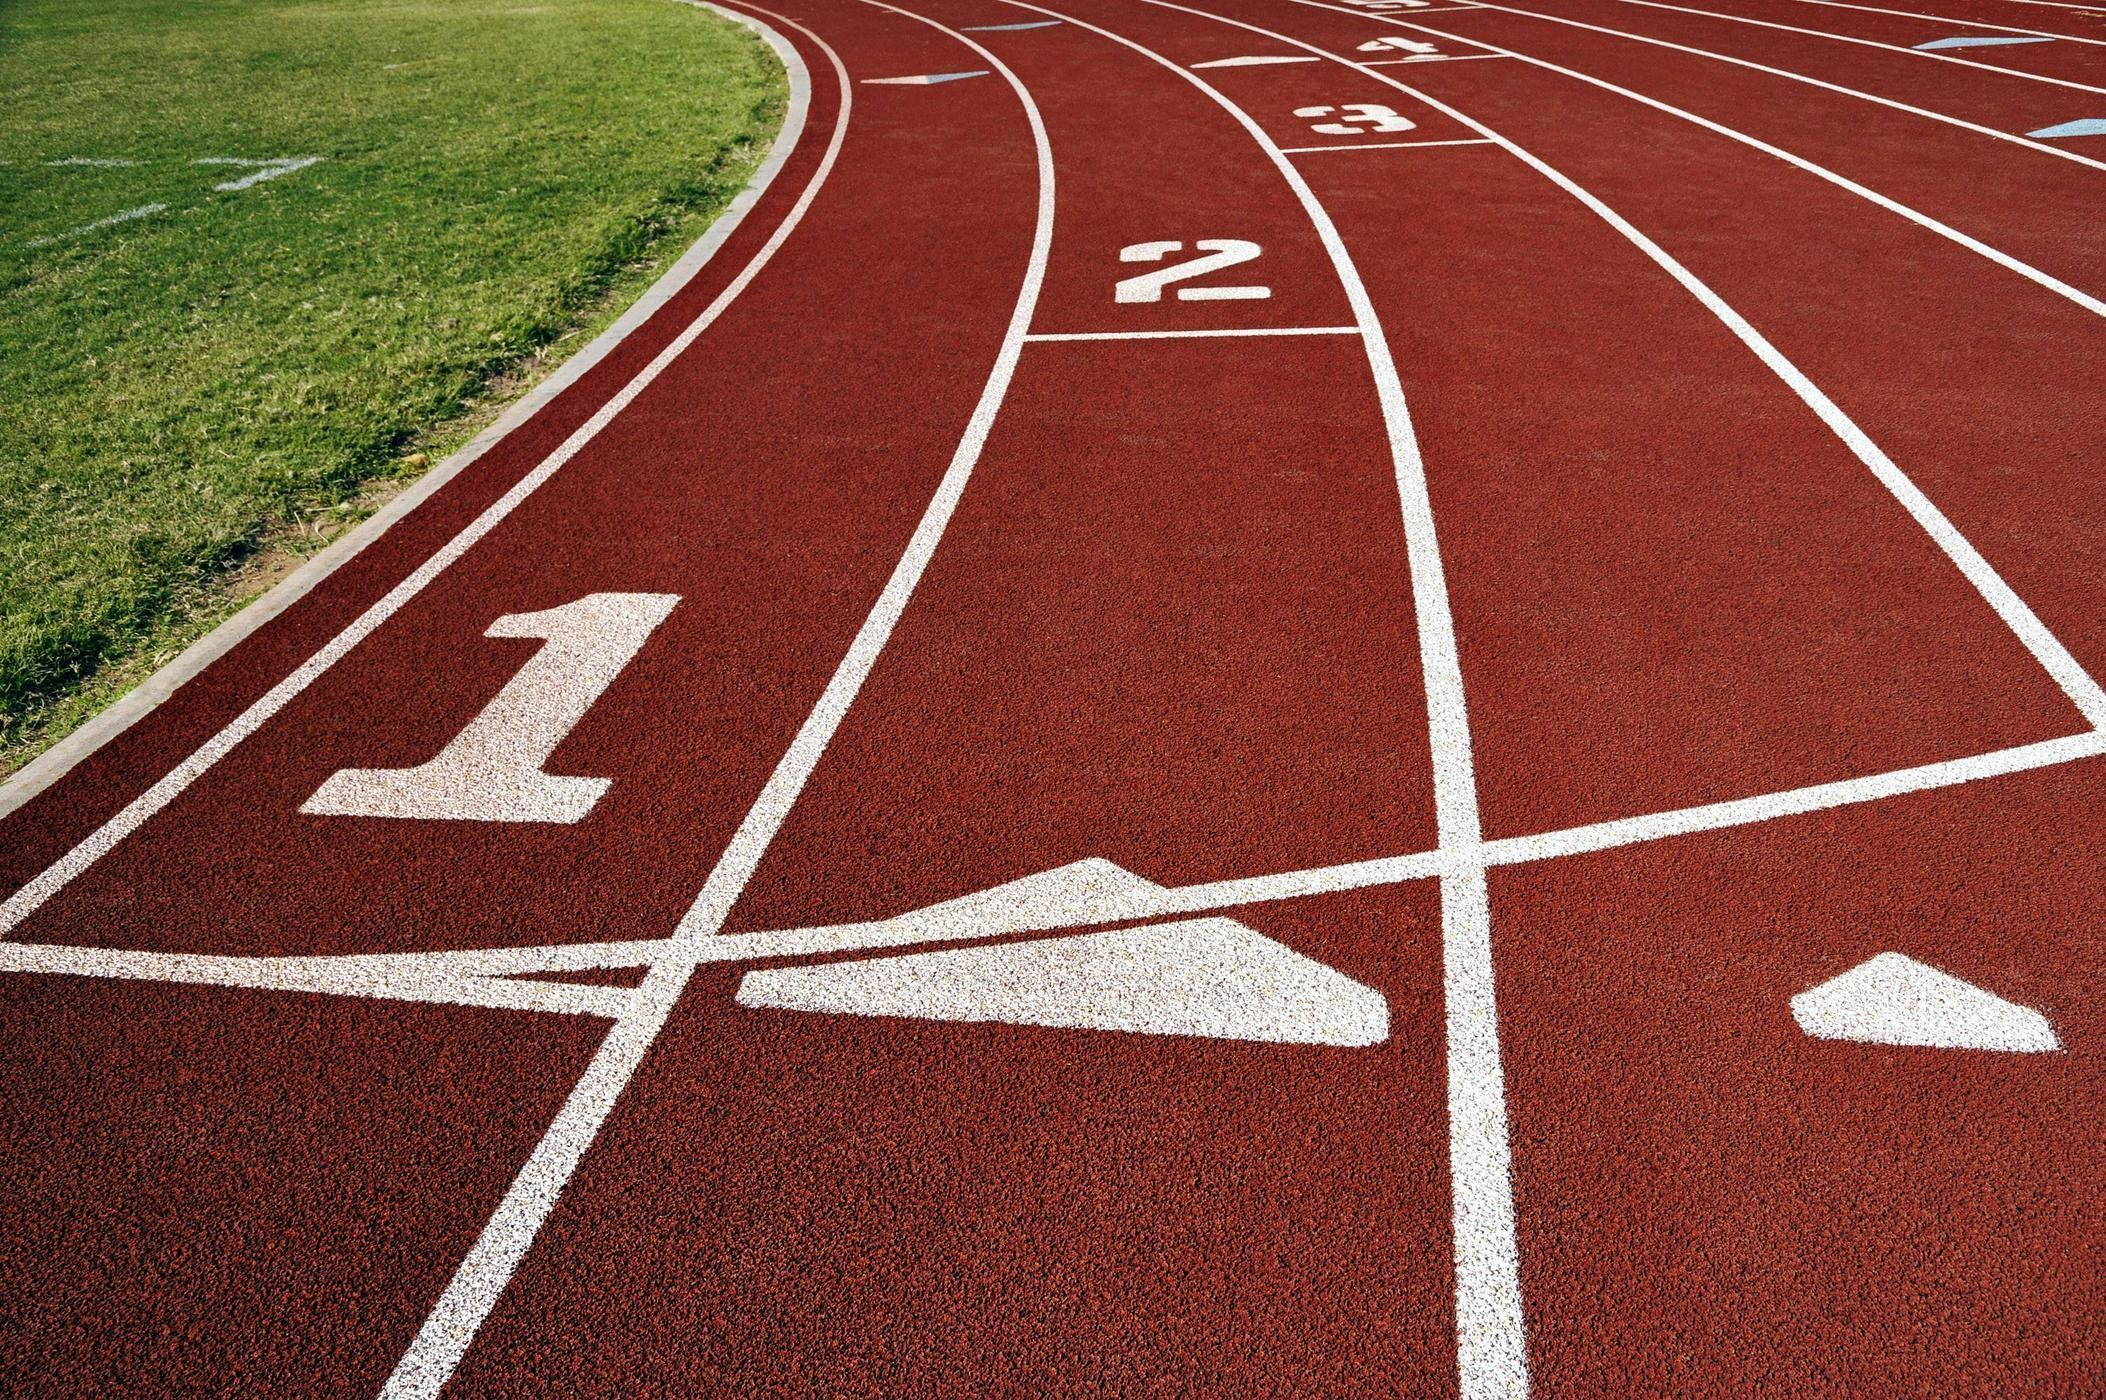 2106x1400 Wallpapers For > Track And Field Sprint Wallpaper